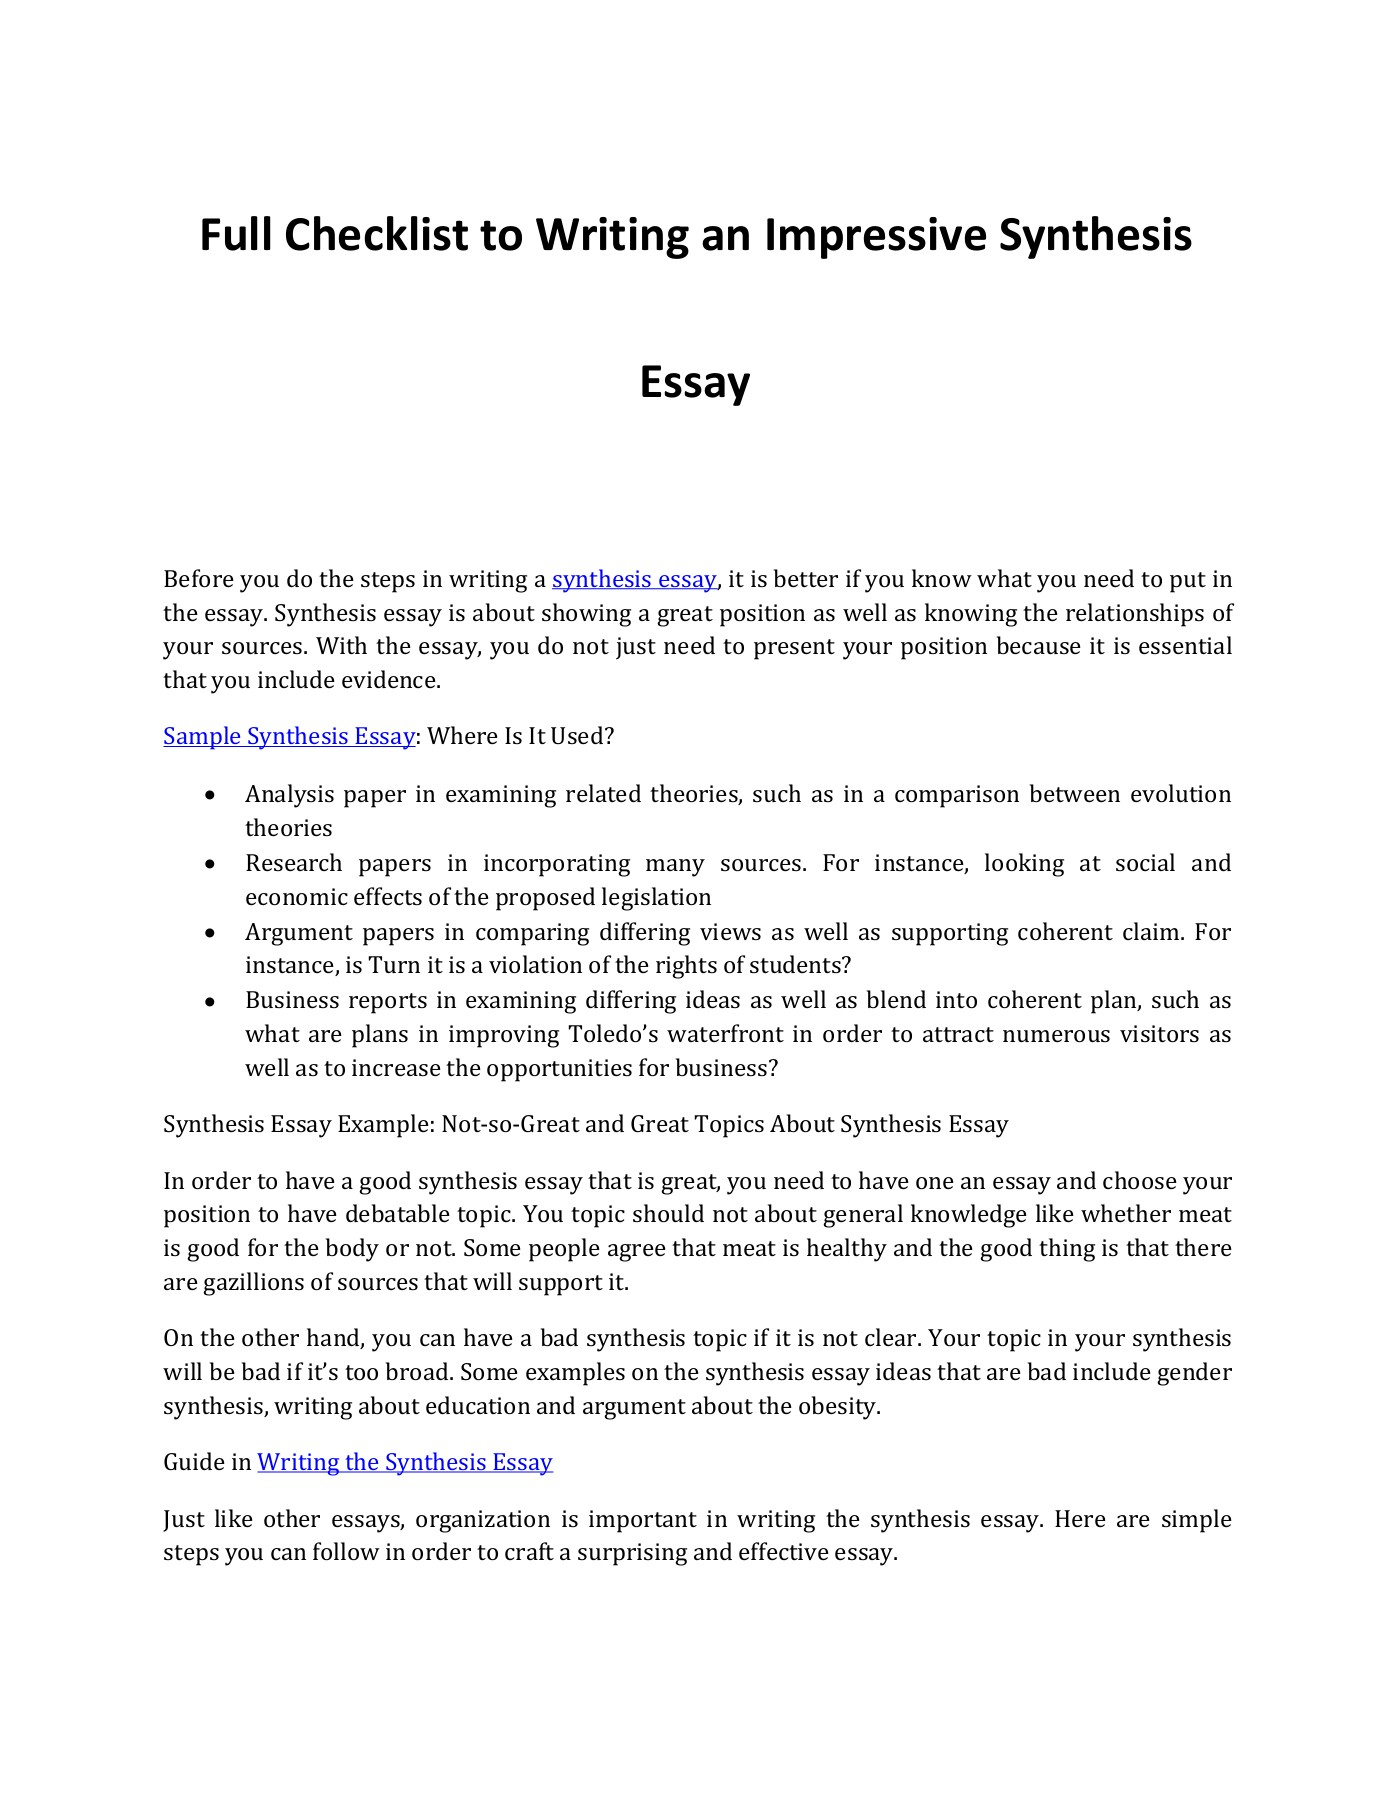 writing an impressive synthesis essay pages     text version  what do you need to remember when writing a synthesis essay check out this  post for important pointers and topic suggestions in writing one